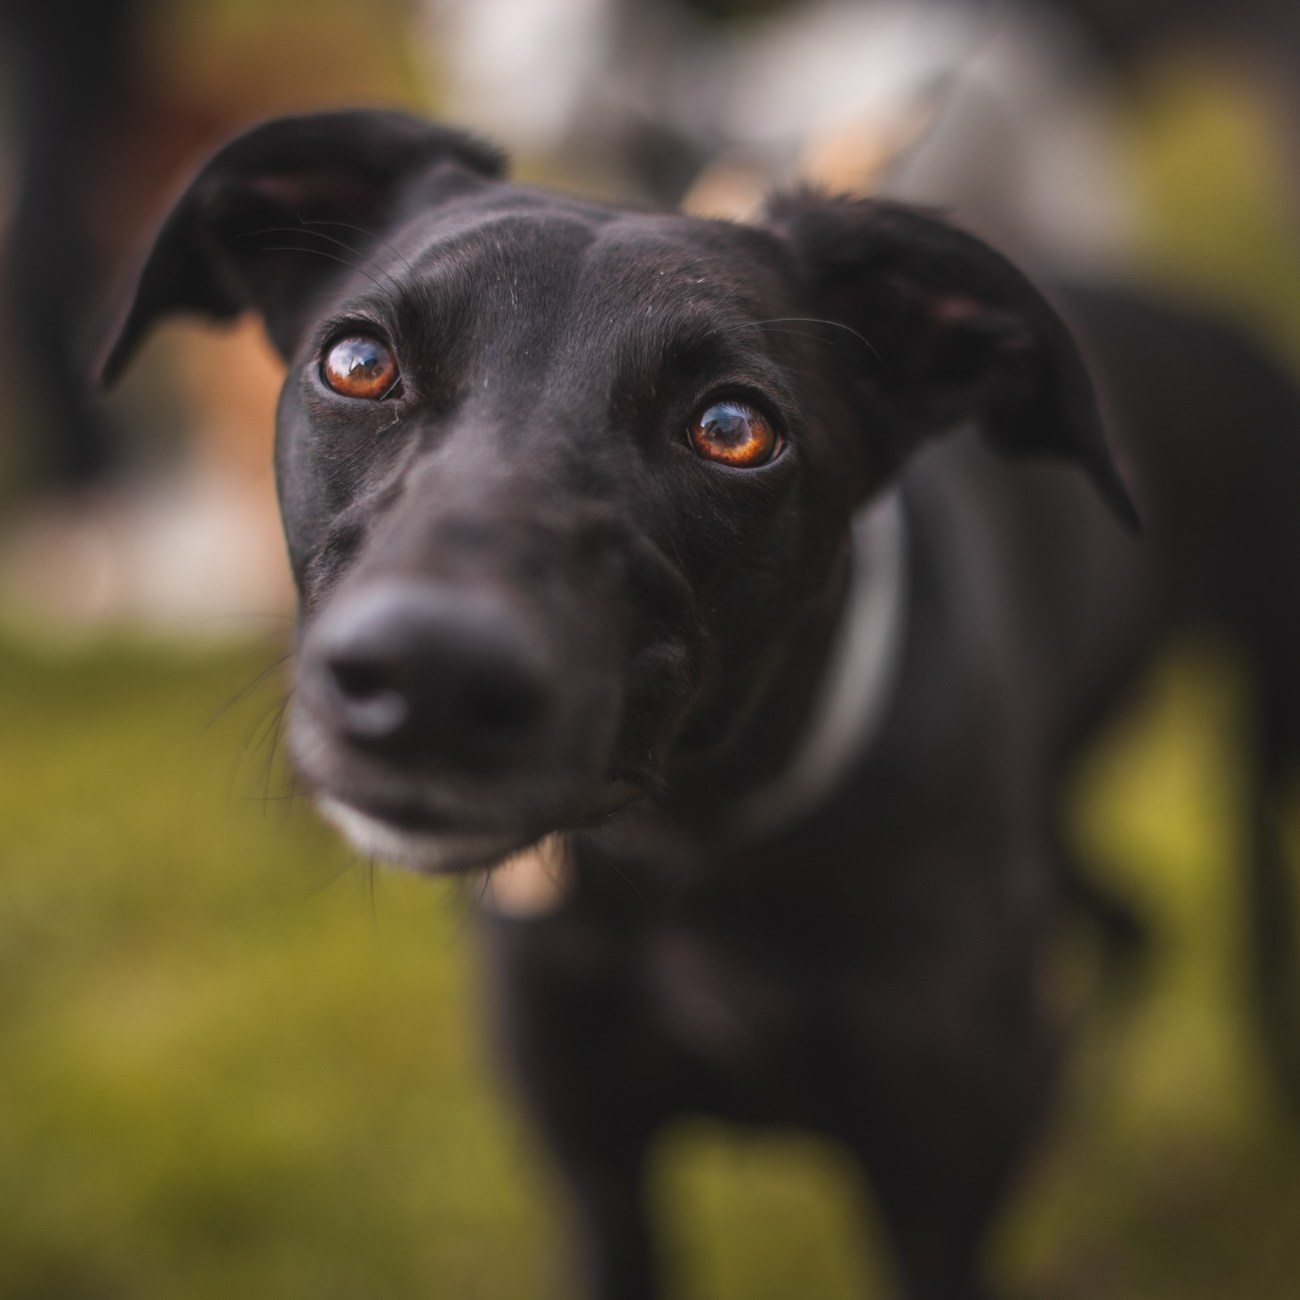 Black whippet cross looking at the camera